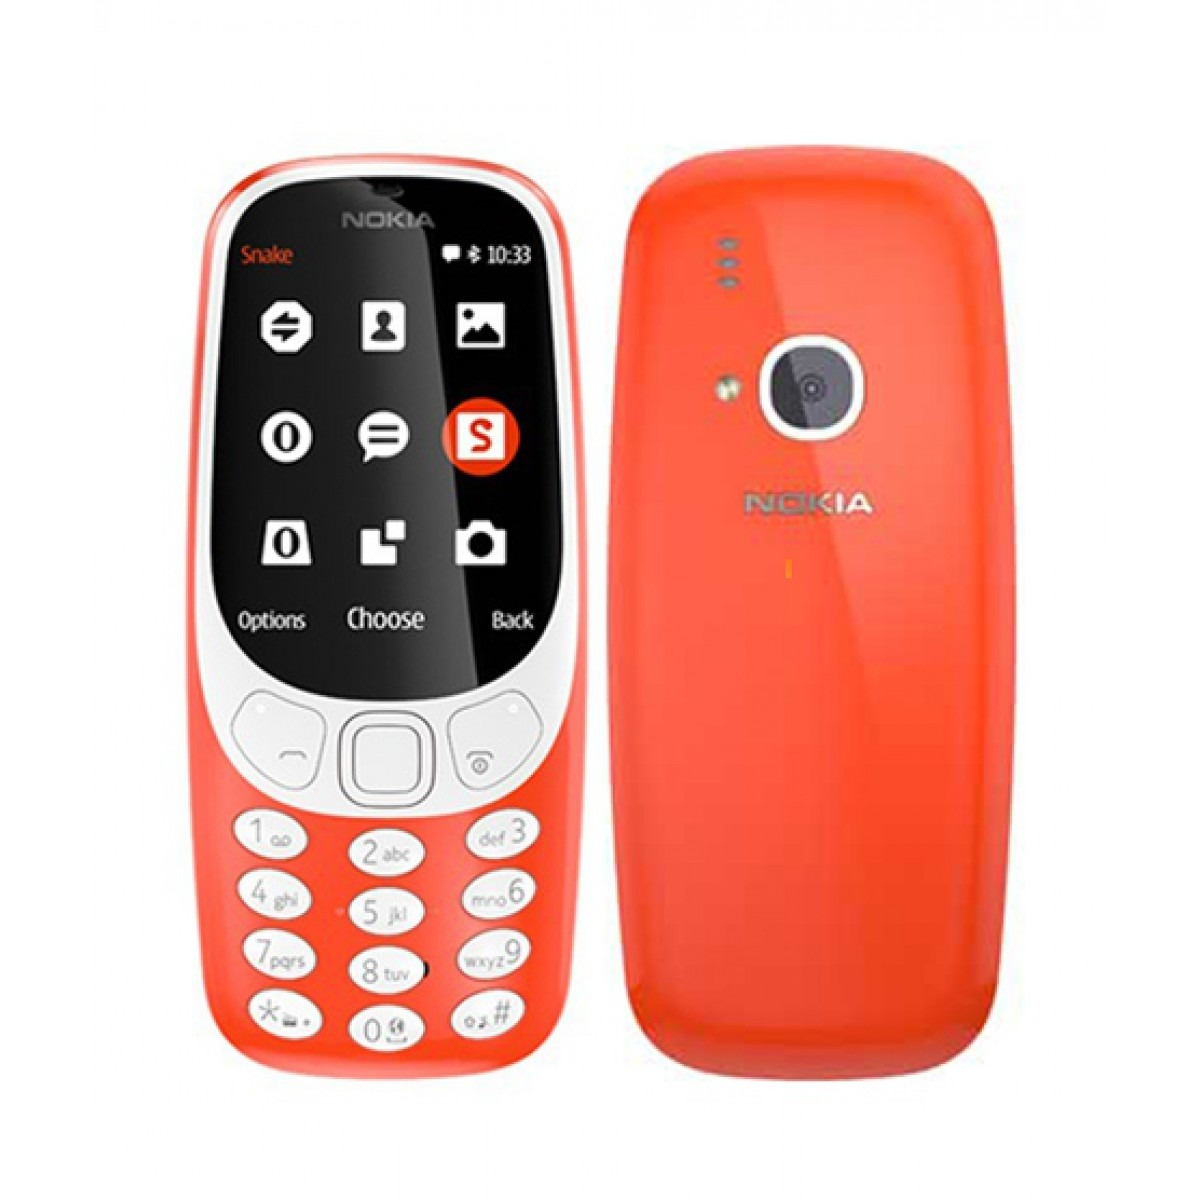 nokia 3310 2 4 qvga display 16mb rom. Black Bedroom Furniture Sets. Home Design Ideas